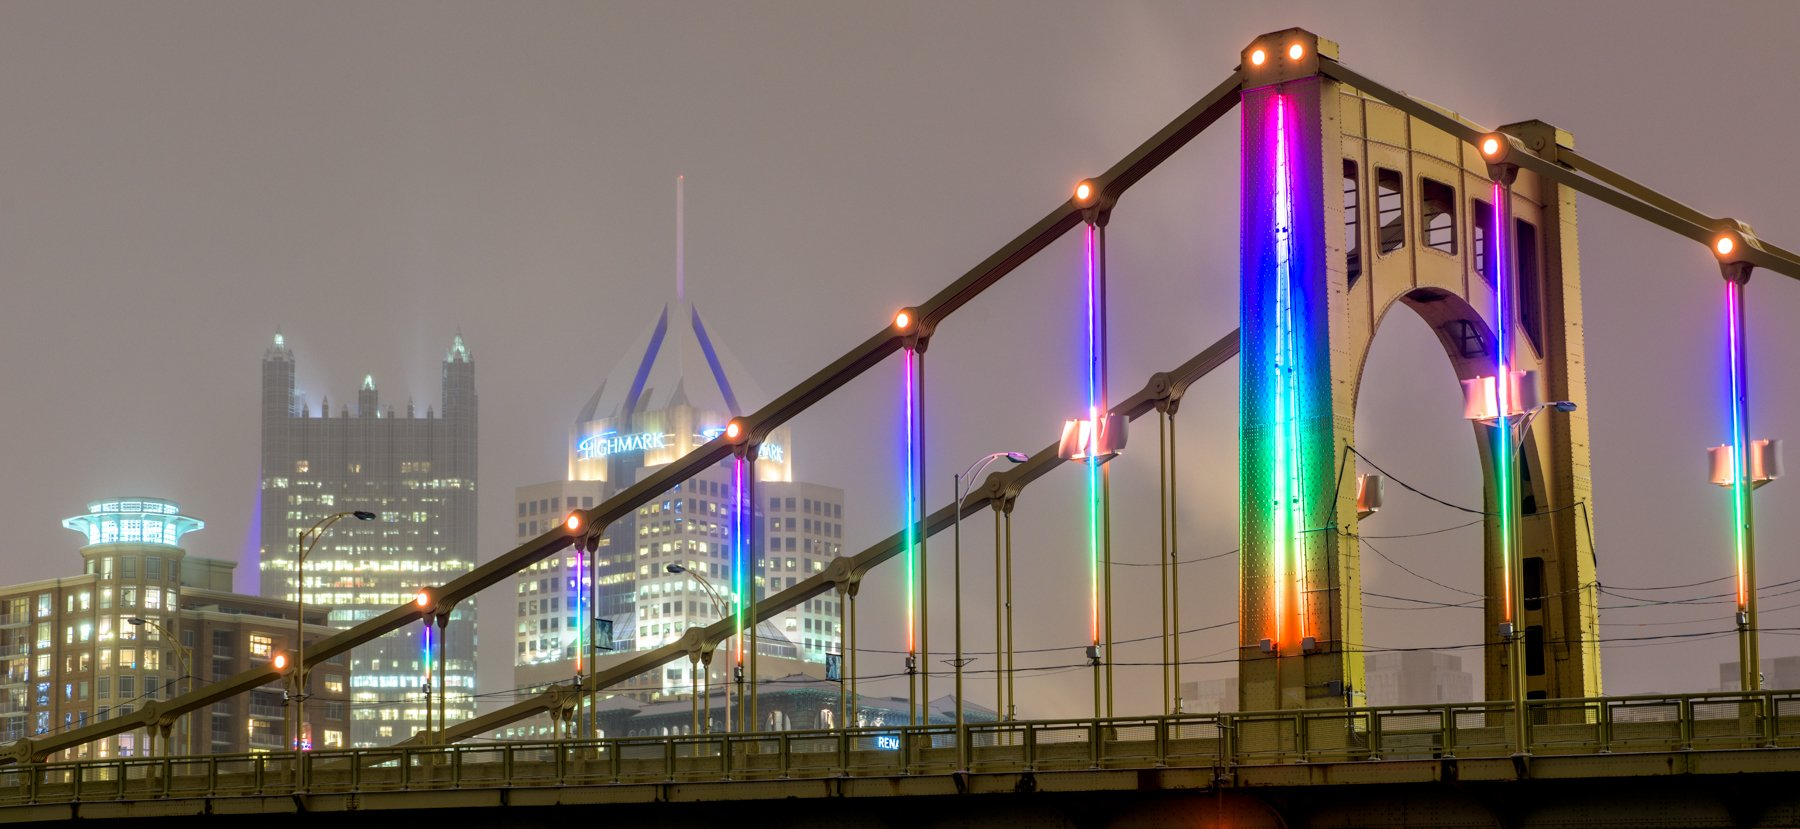 """The Carson Bridge illuminated through the """"Energy Flow"""" project which utilizes wind power to generate the power for the numerous LED lights on the bridge."""